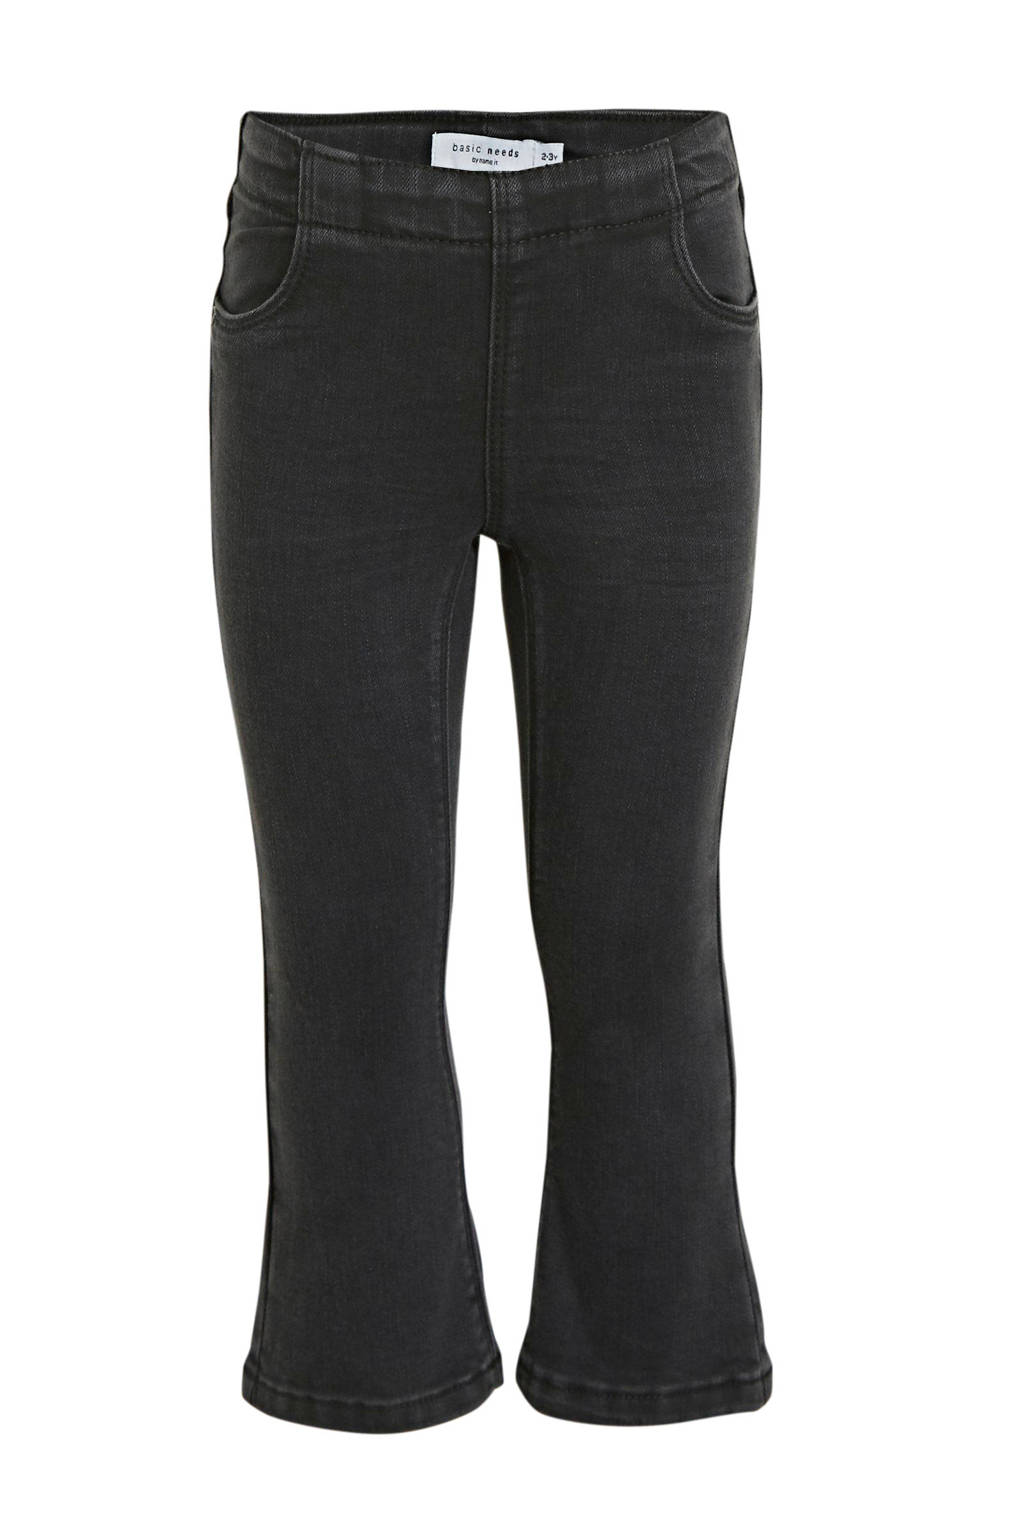 NAME IT MINI flared broek Polly zwart, Zwart